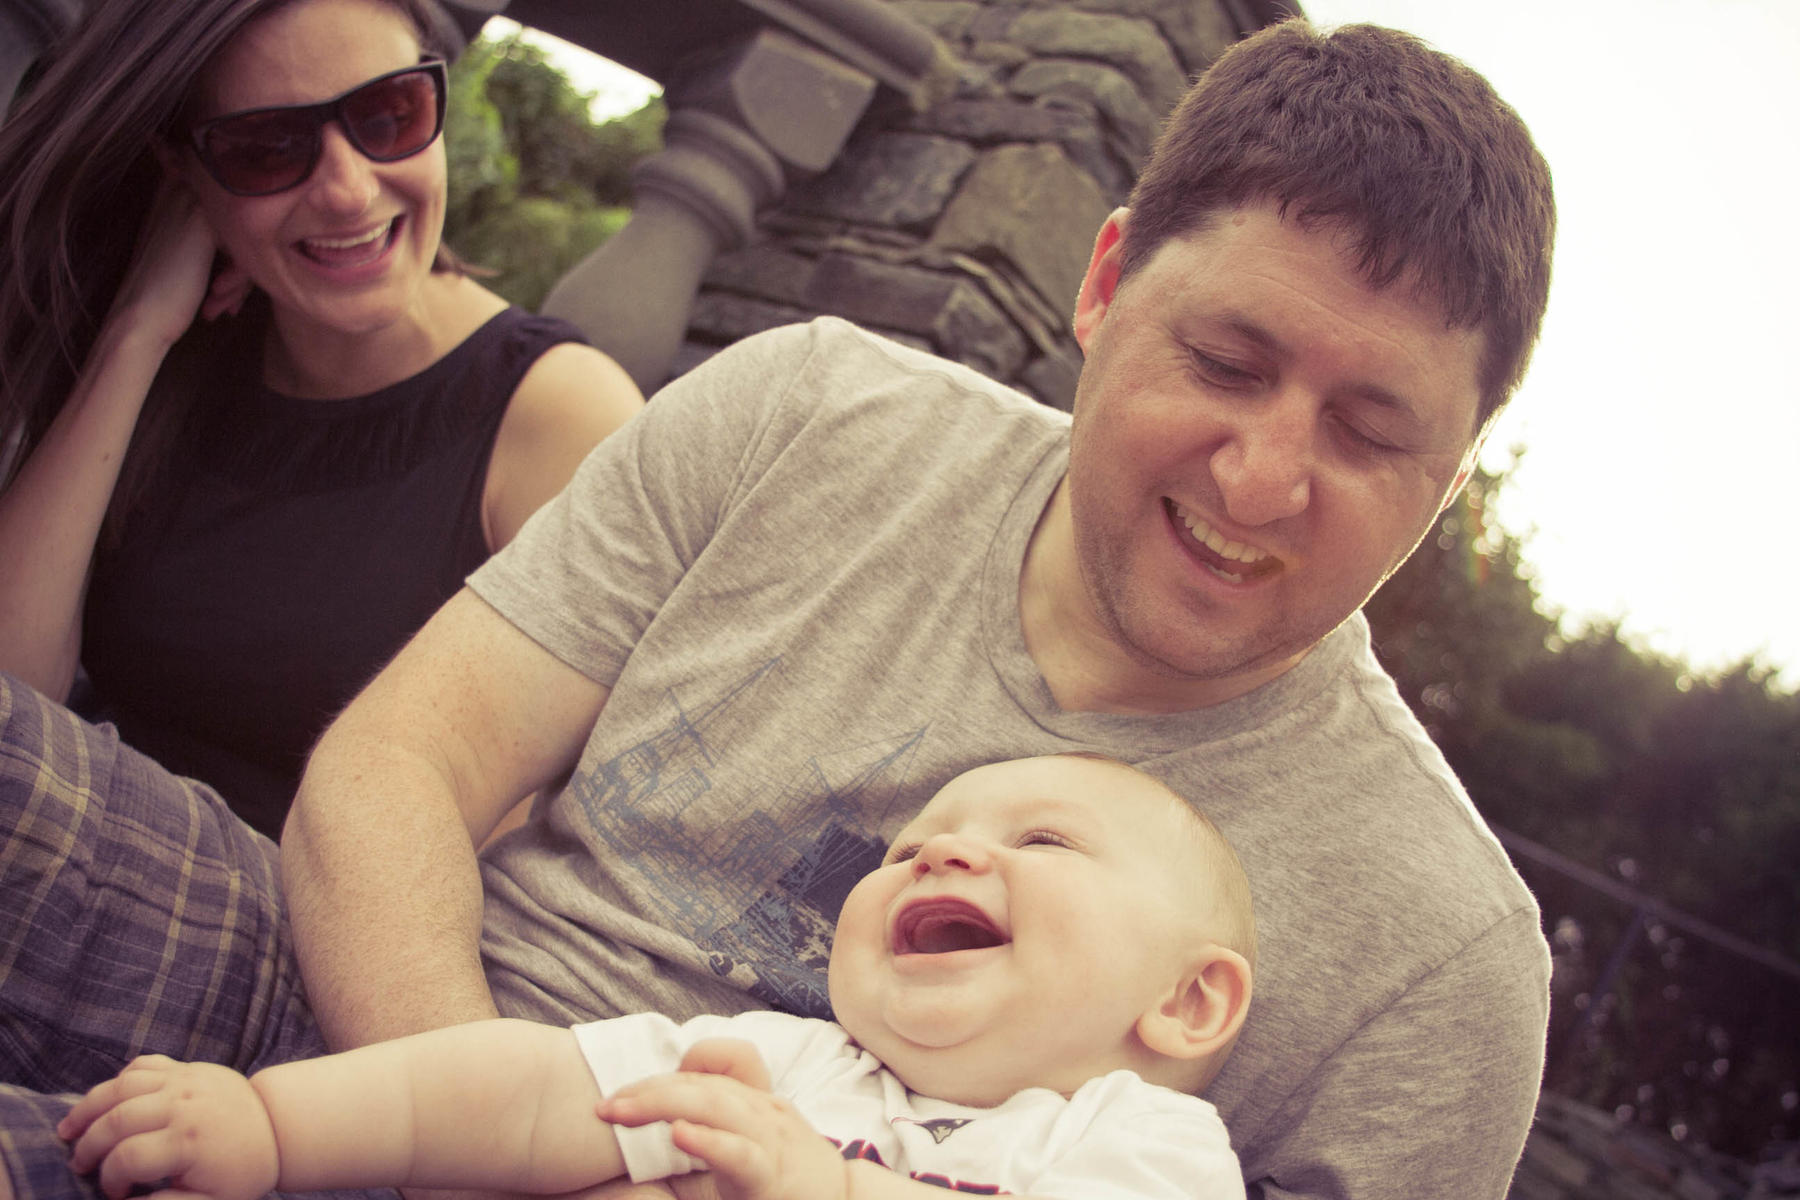 Vengrow family relationship changes after baby